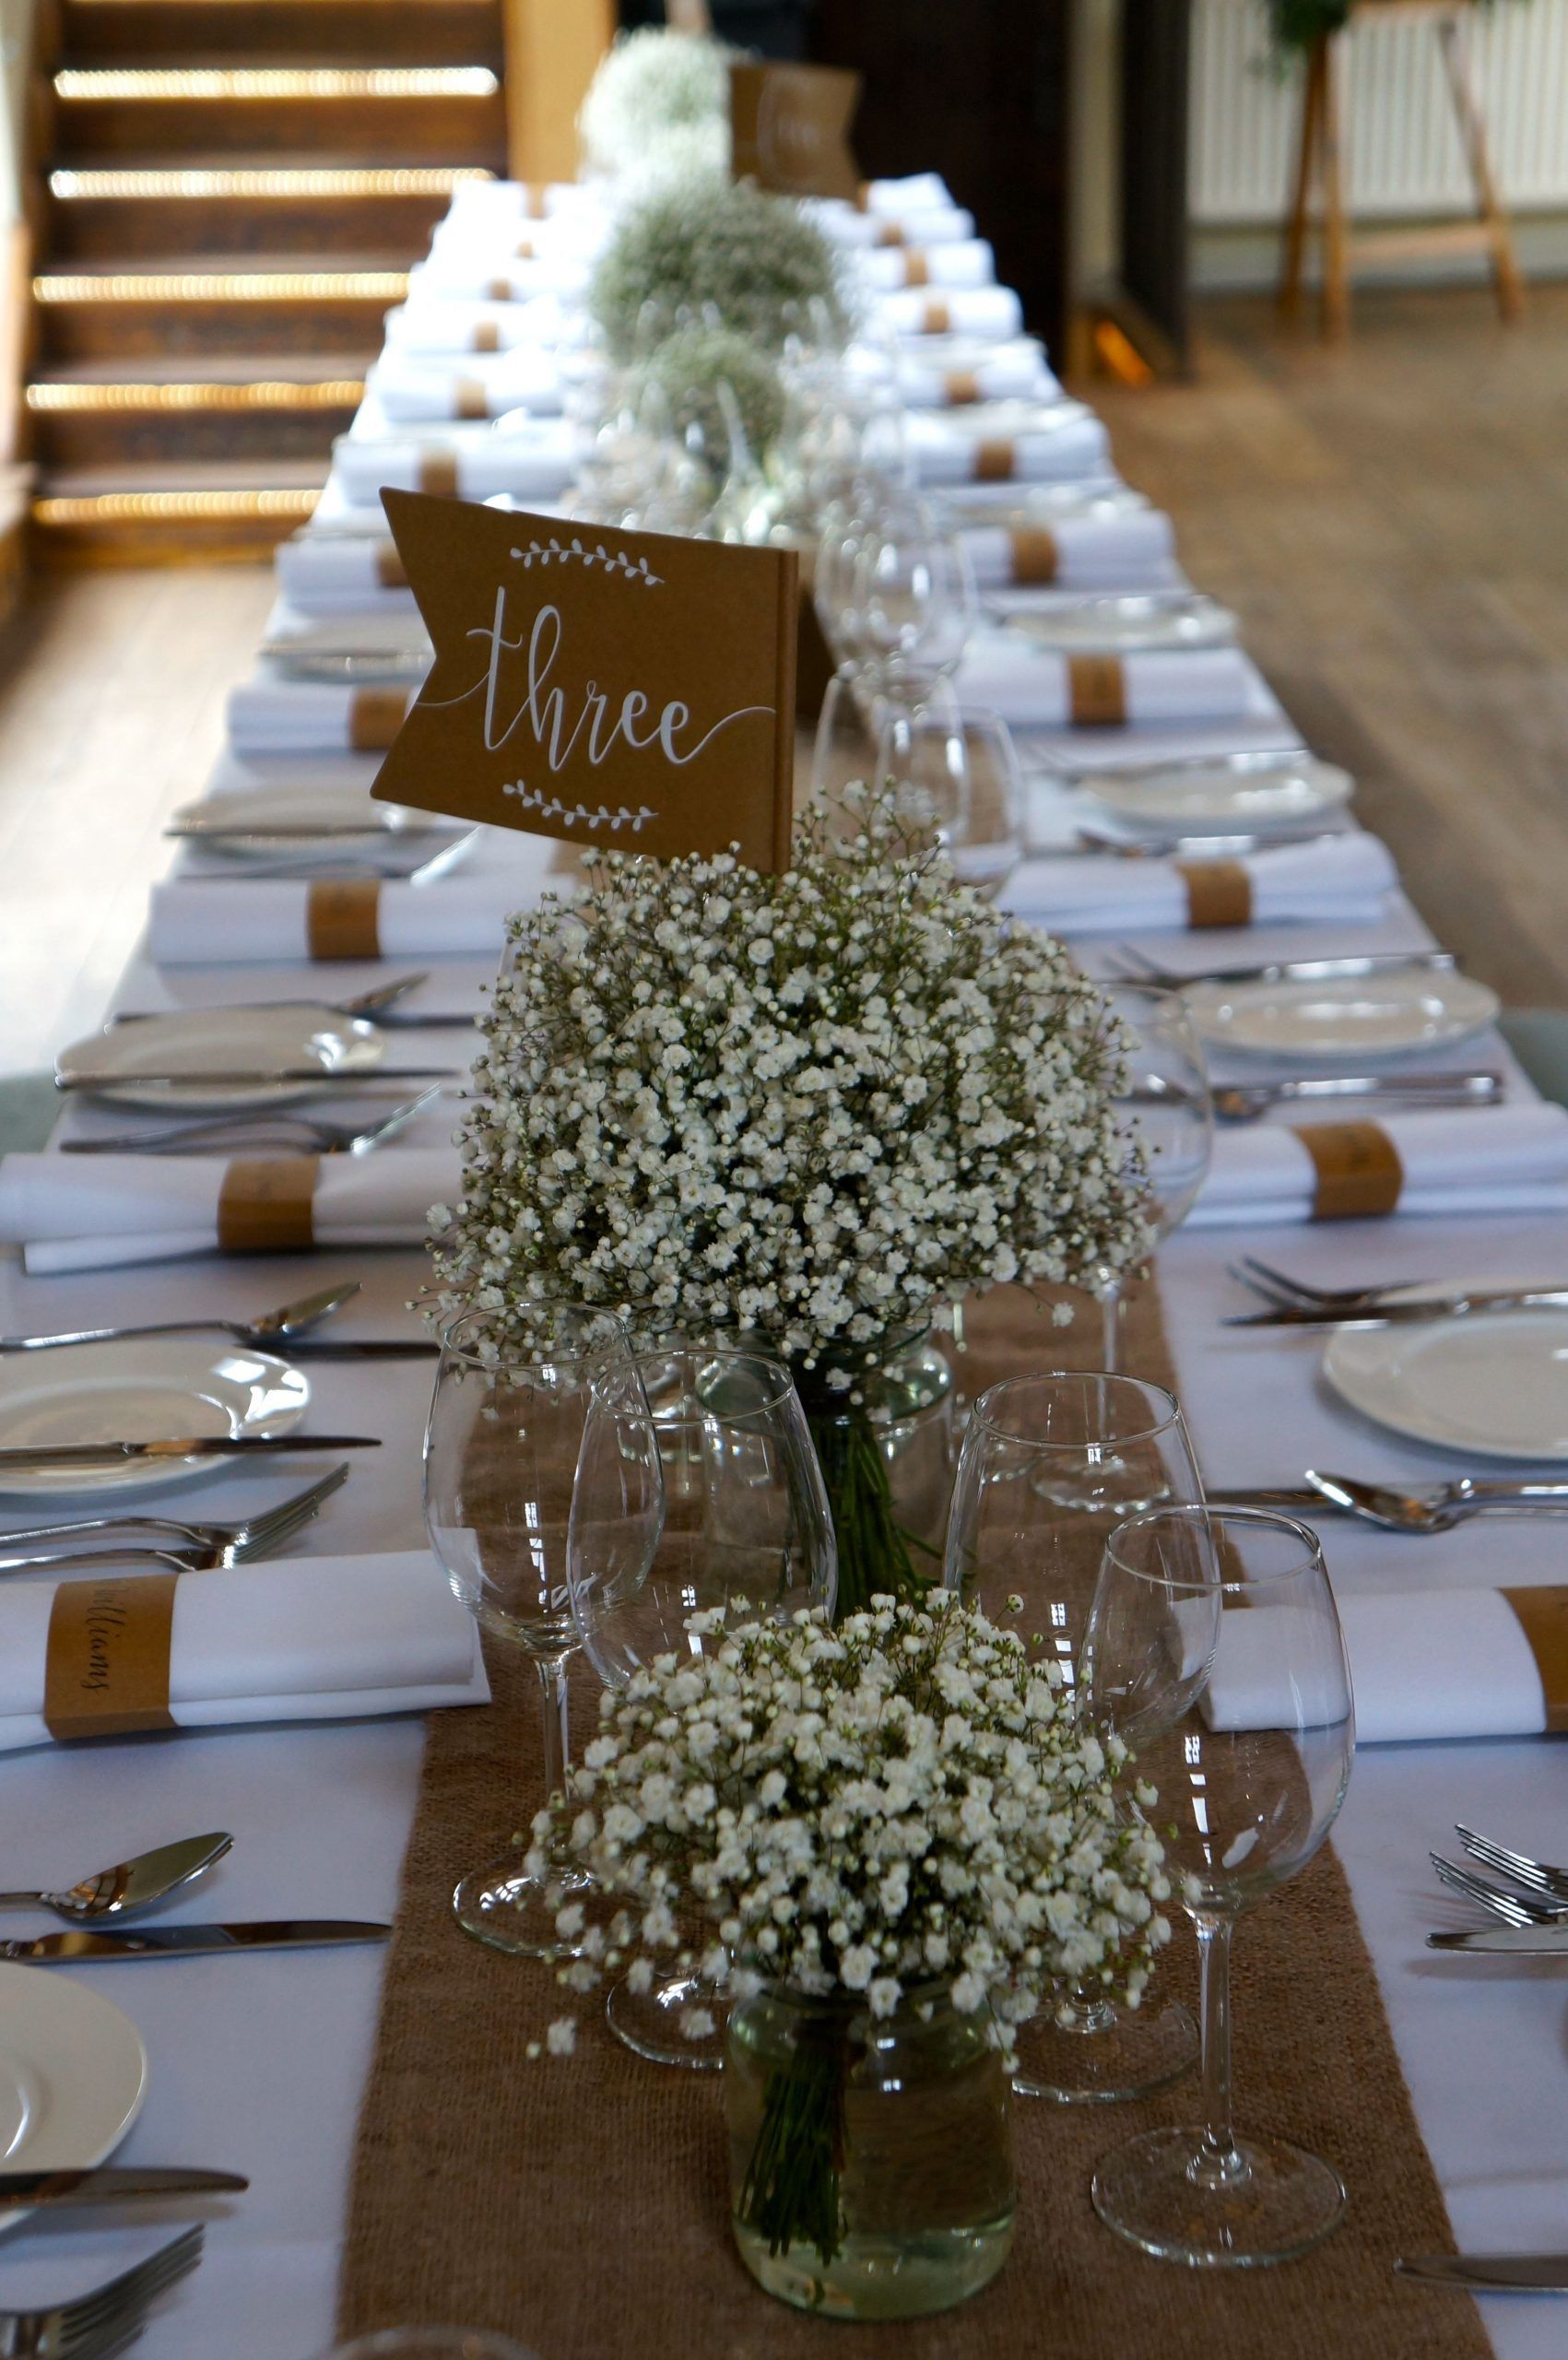 Table Decoration At Dodmoor House Decoration Dodmoor House Table Decoration Dodmoor Ho In 2020 Bridal Shower Decorations Rustic Bridal Shower Rustic Wedding Table